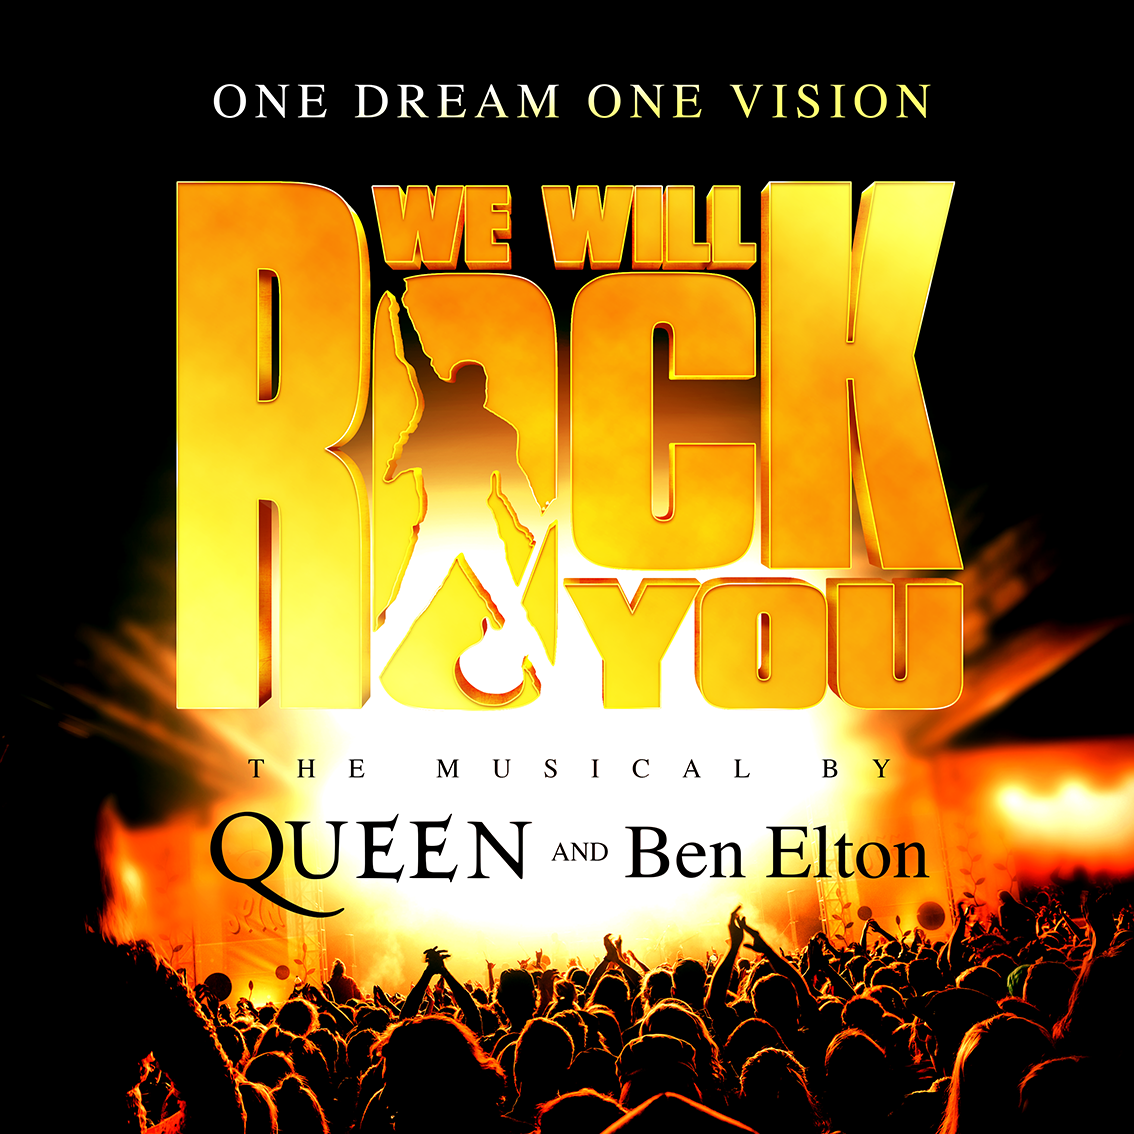 ANNOUNCEMENT: A major worldwide tour of Queen & Ben Elton's electrifying hit musical - We Will Rock You